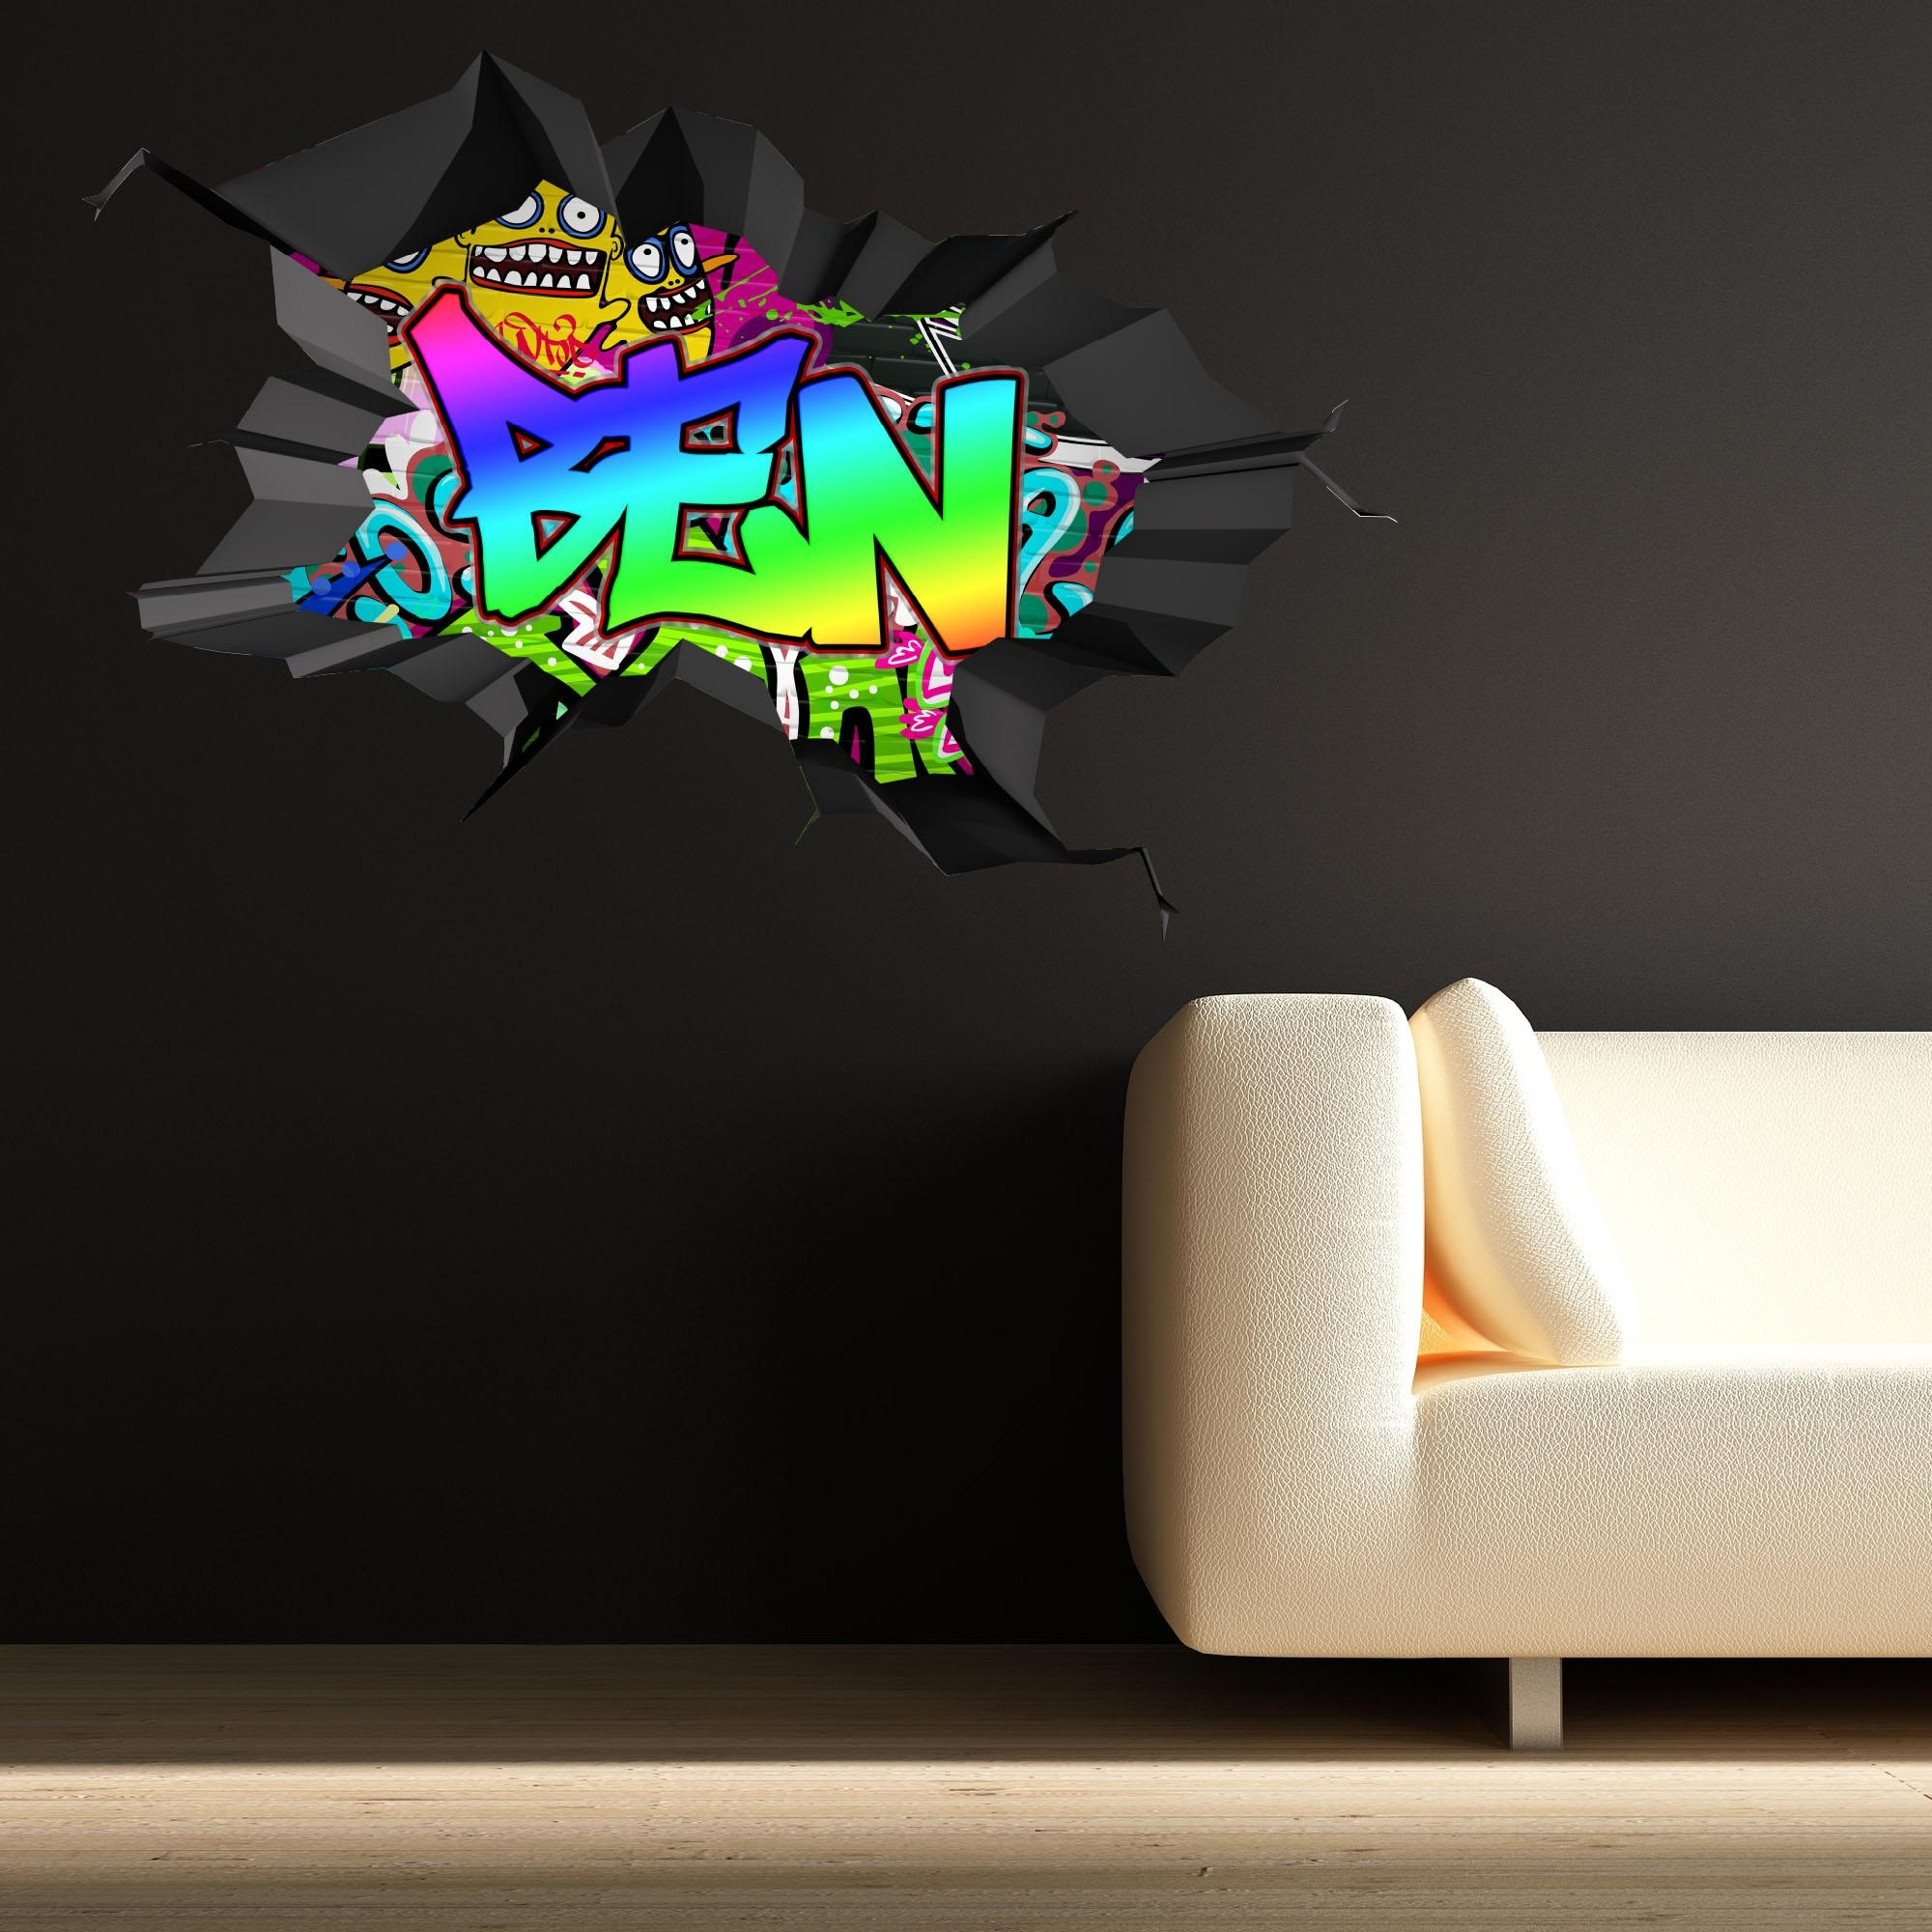 Personalised graffiti wall stickers gallery home wall decoration graffiti wall stickers gallery home wall decoration ideas graffiti wall sticker choice image home wall decoration amipublicfo Gallery